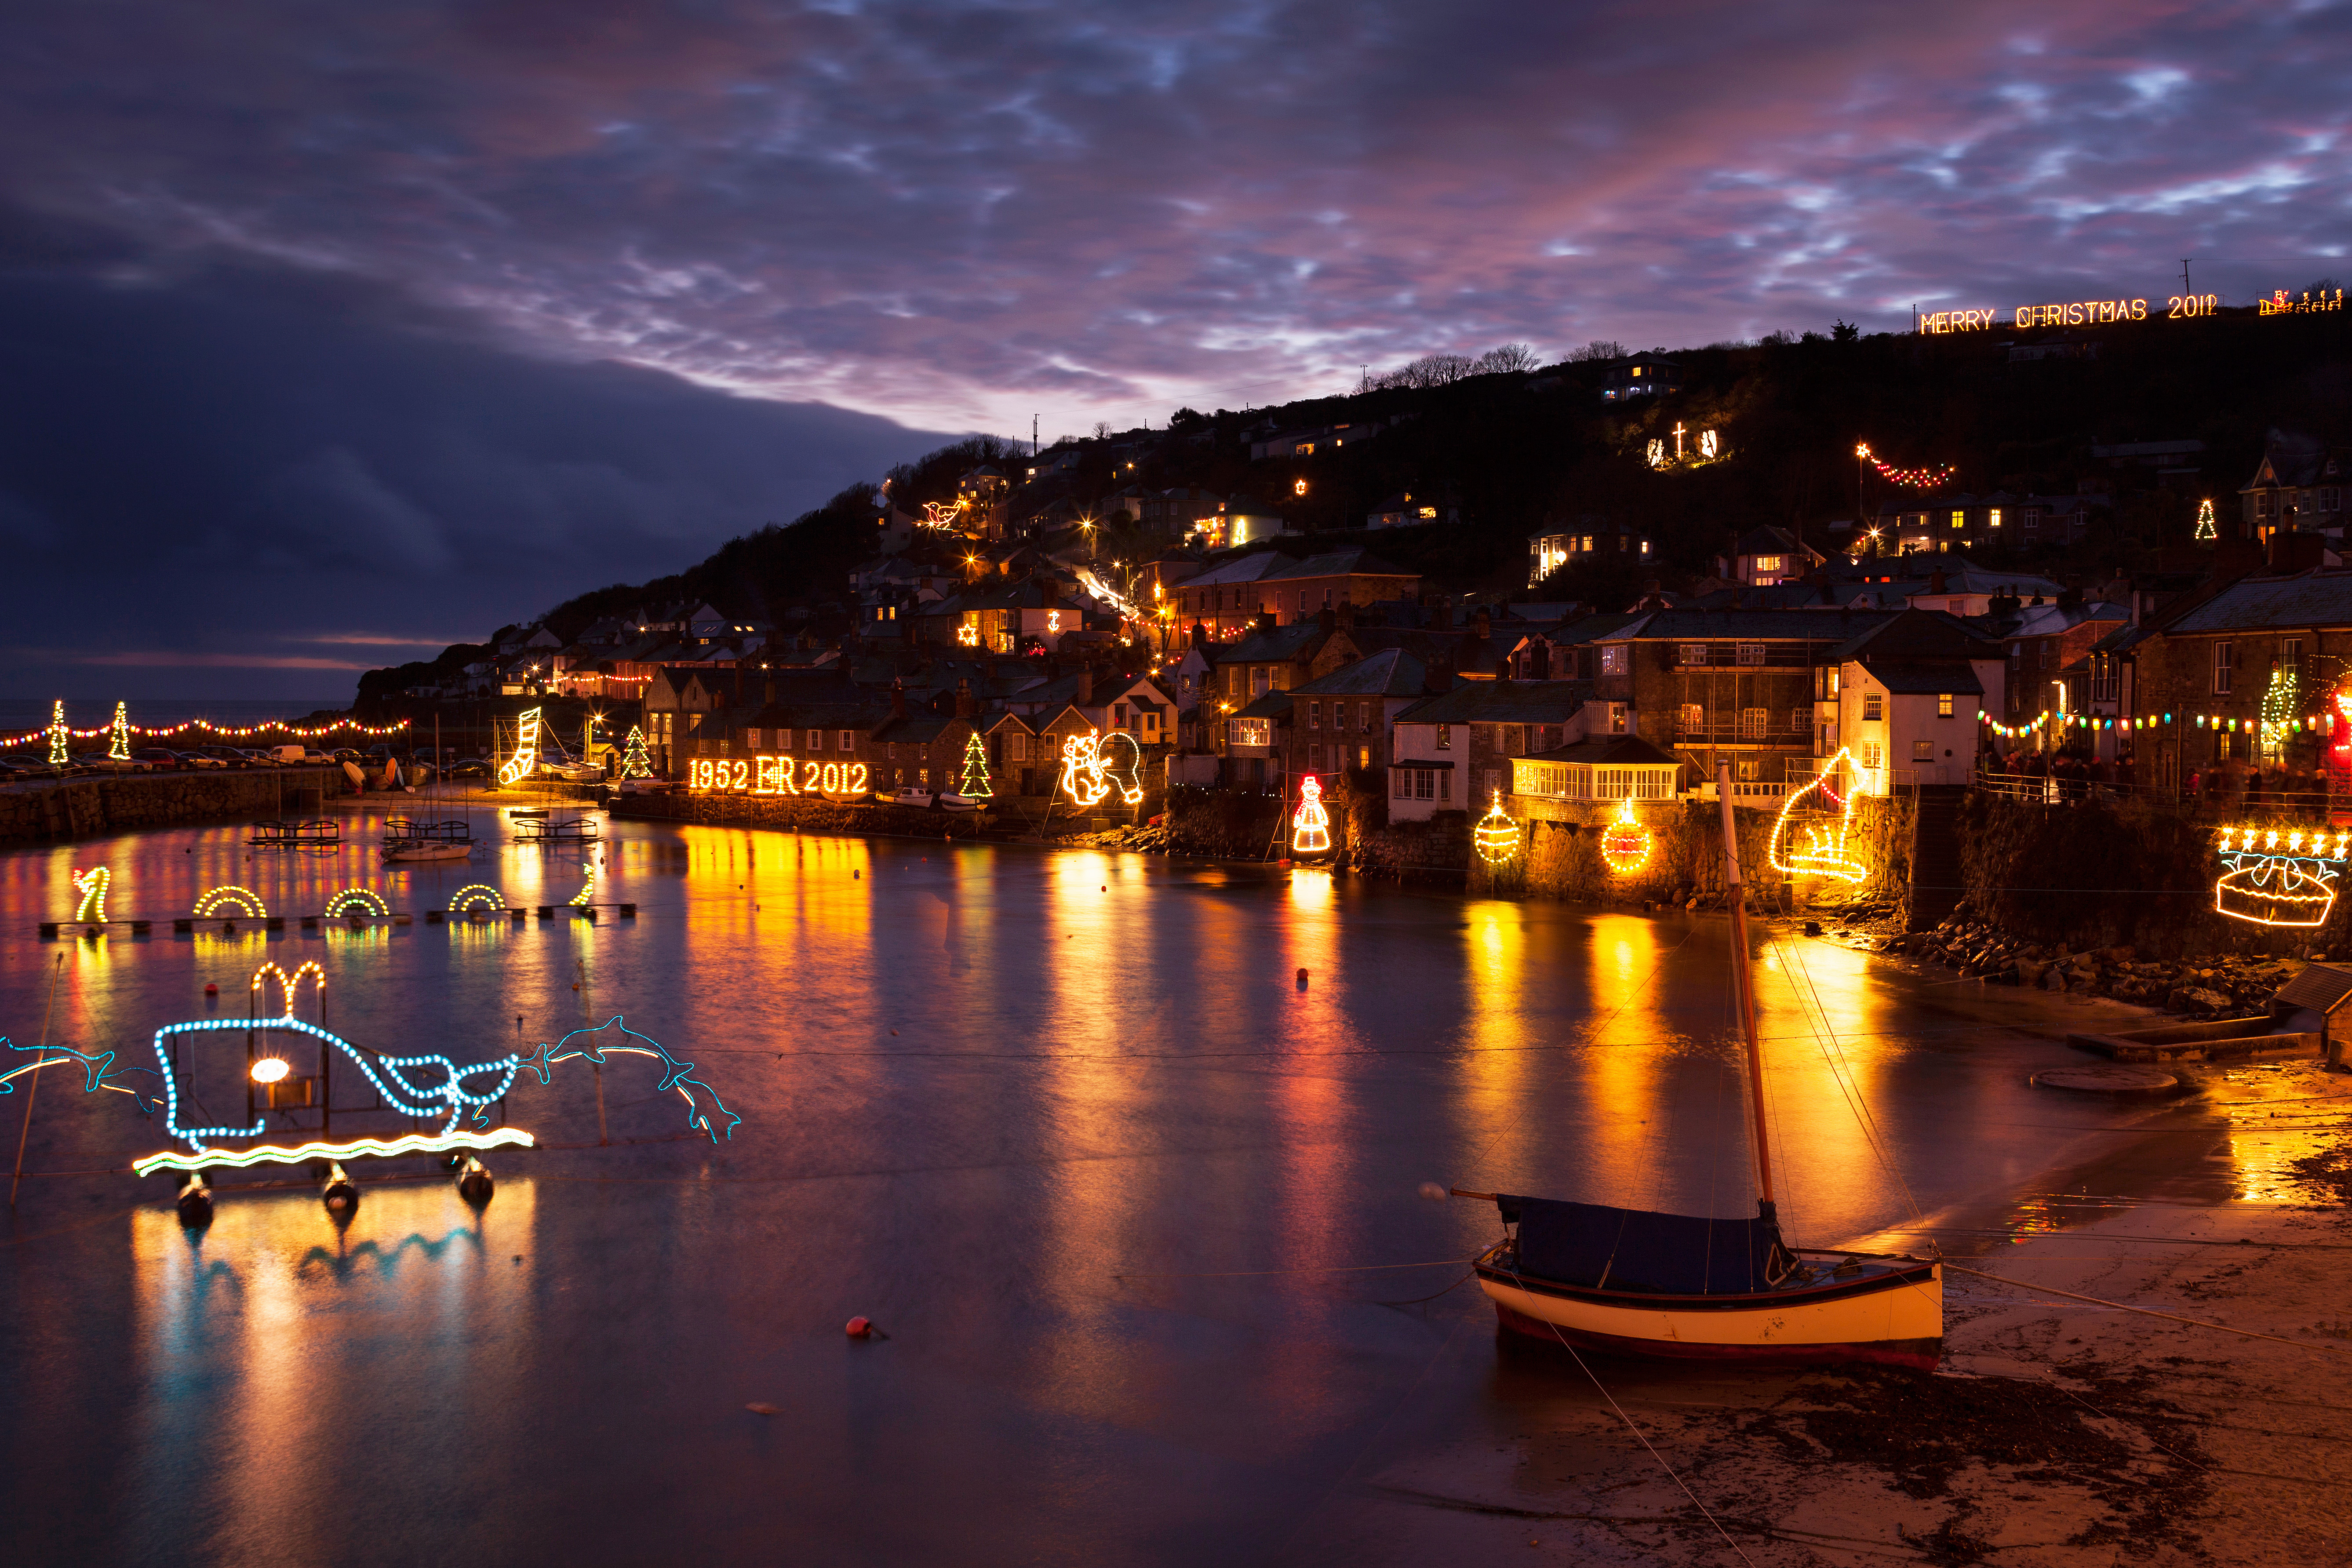 Mousehole Christmas lights, December, Cornwall, UK